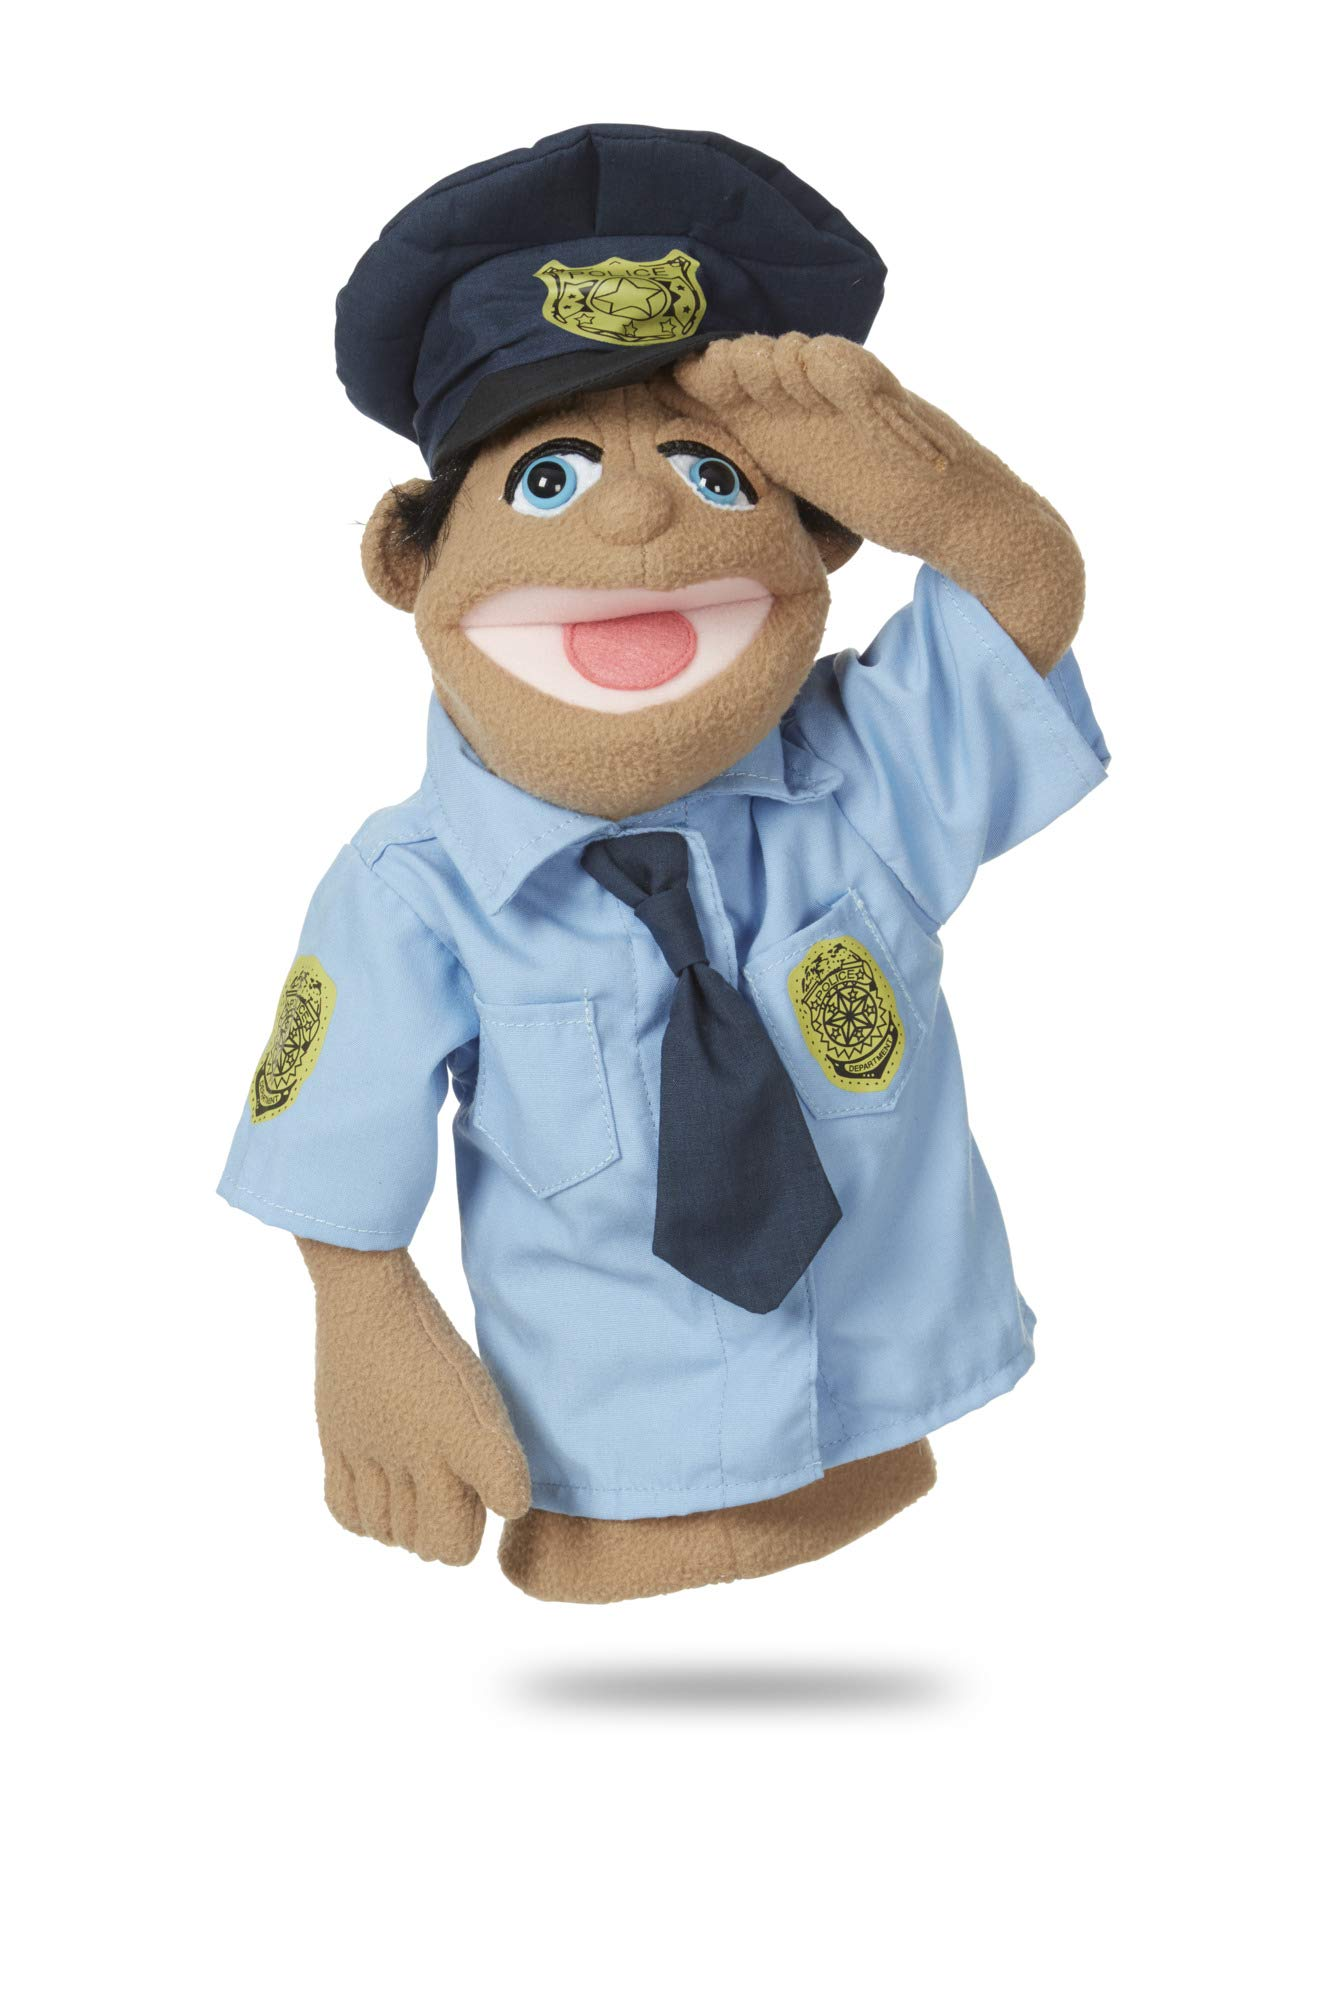 Melissa & Doug Police Officer Puppet with Detachable Wooden Rod for Animated Gestures by Melissa & Doug